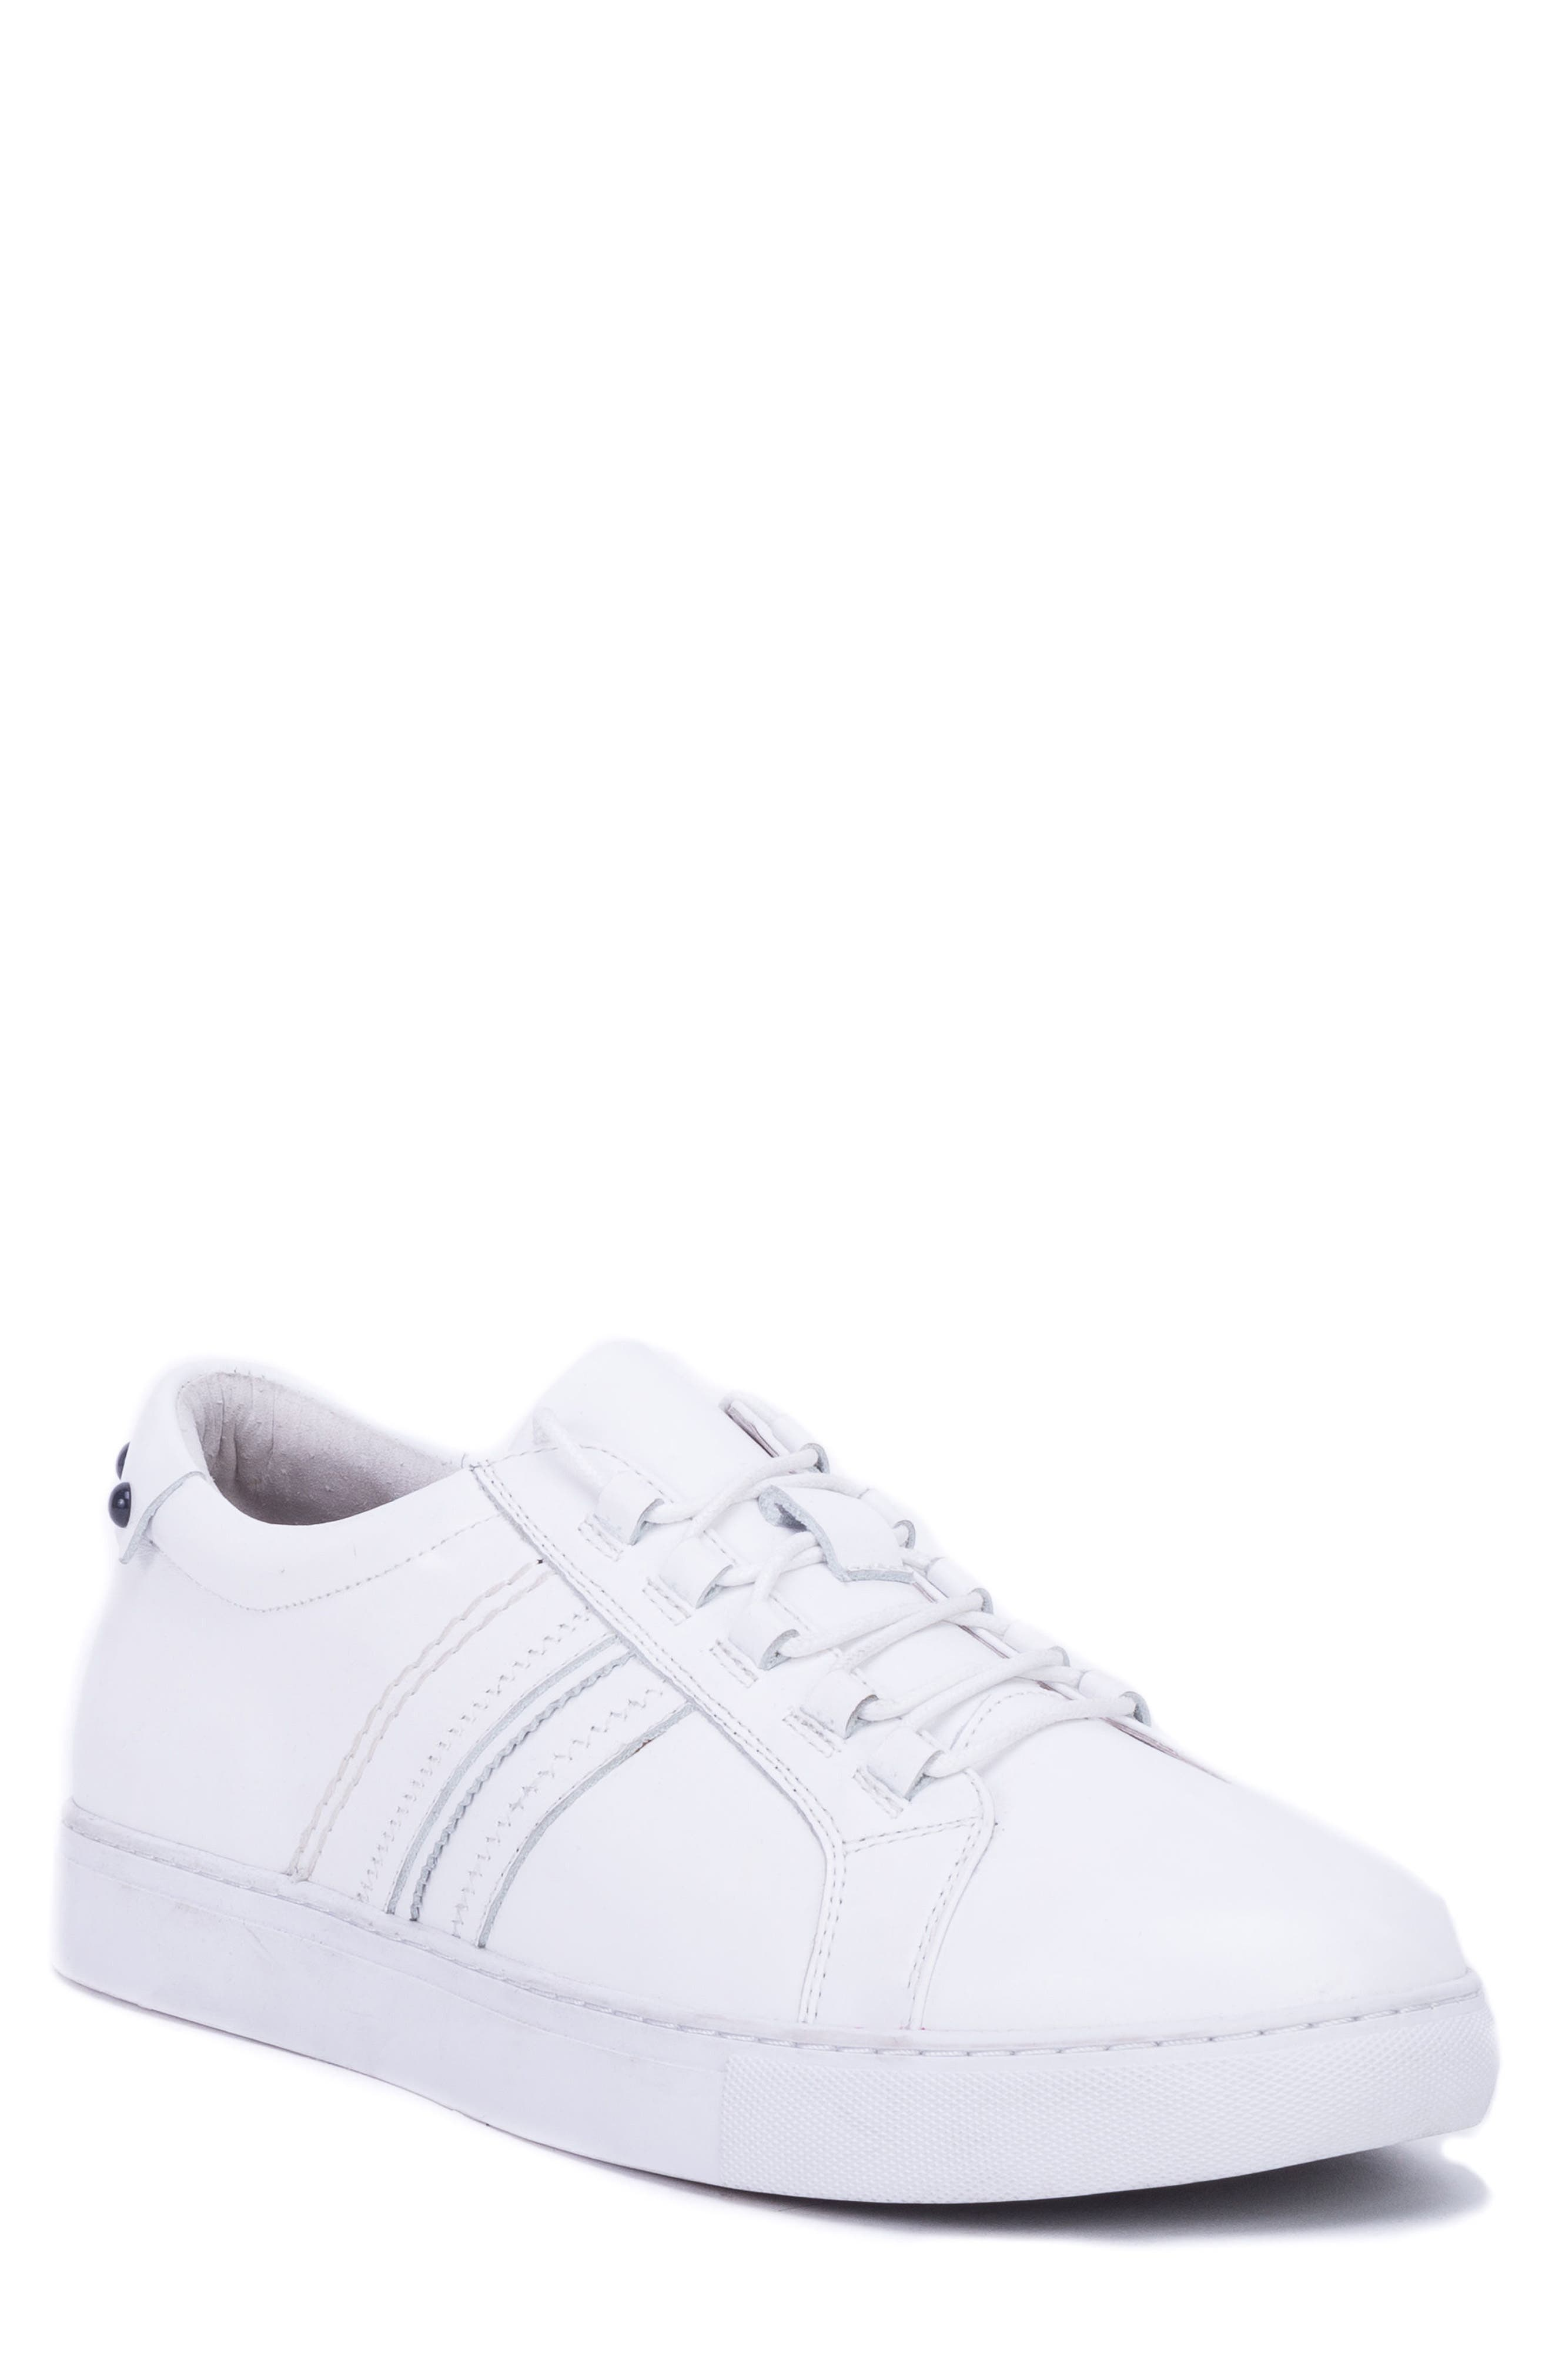 Horton Studded Low Top Sneaker,                             Main thumbnail 1, color,                             WHITE LEATHER